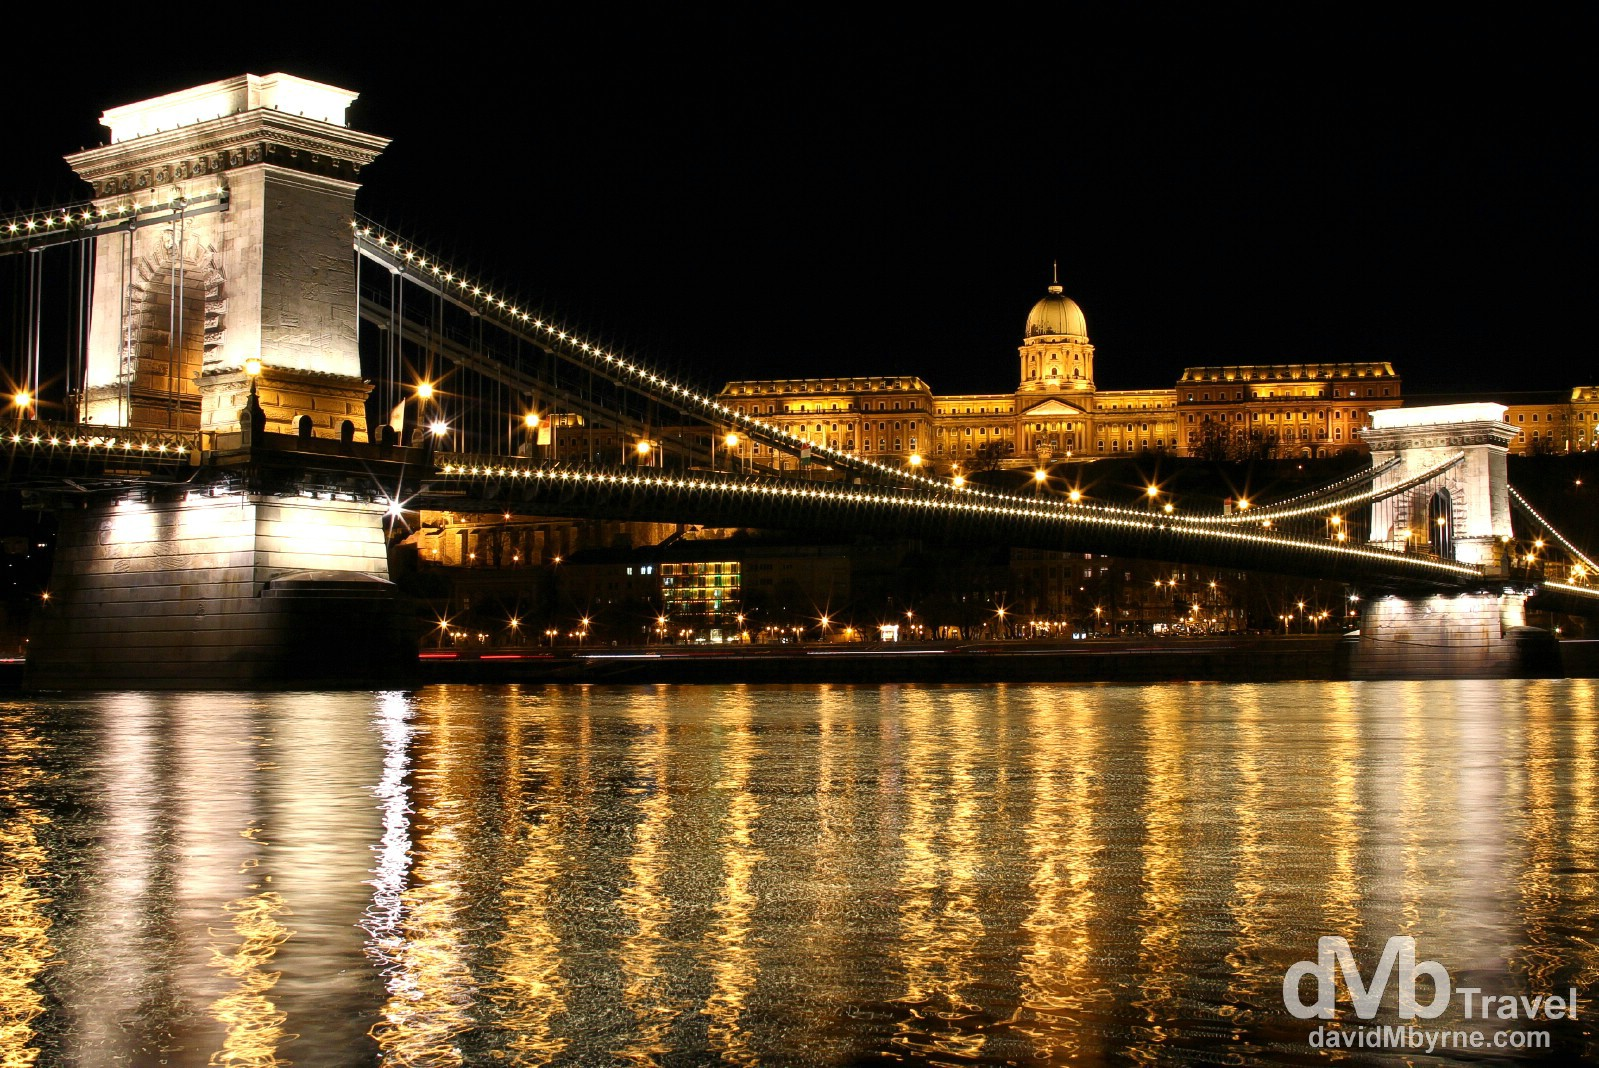 The Royal Palace in Buda & the Chain Bridge spanning the Danube as seen from the riverfront in Pest. Budapest, Hungary, March 25th, 2014.